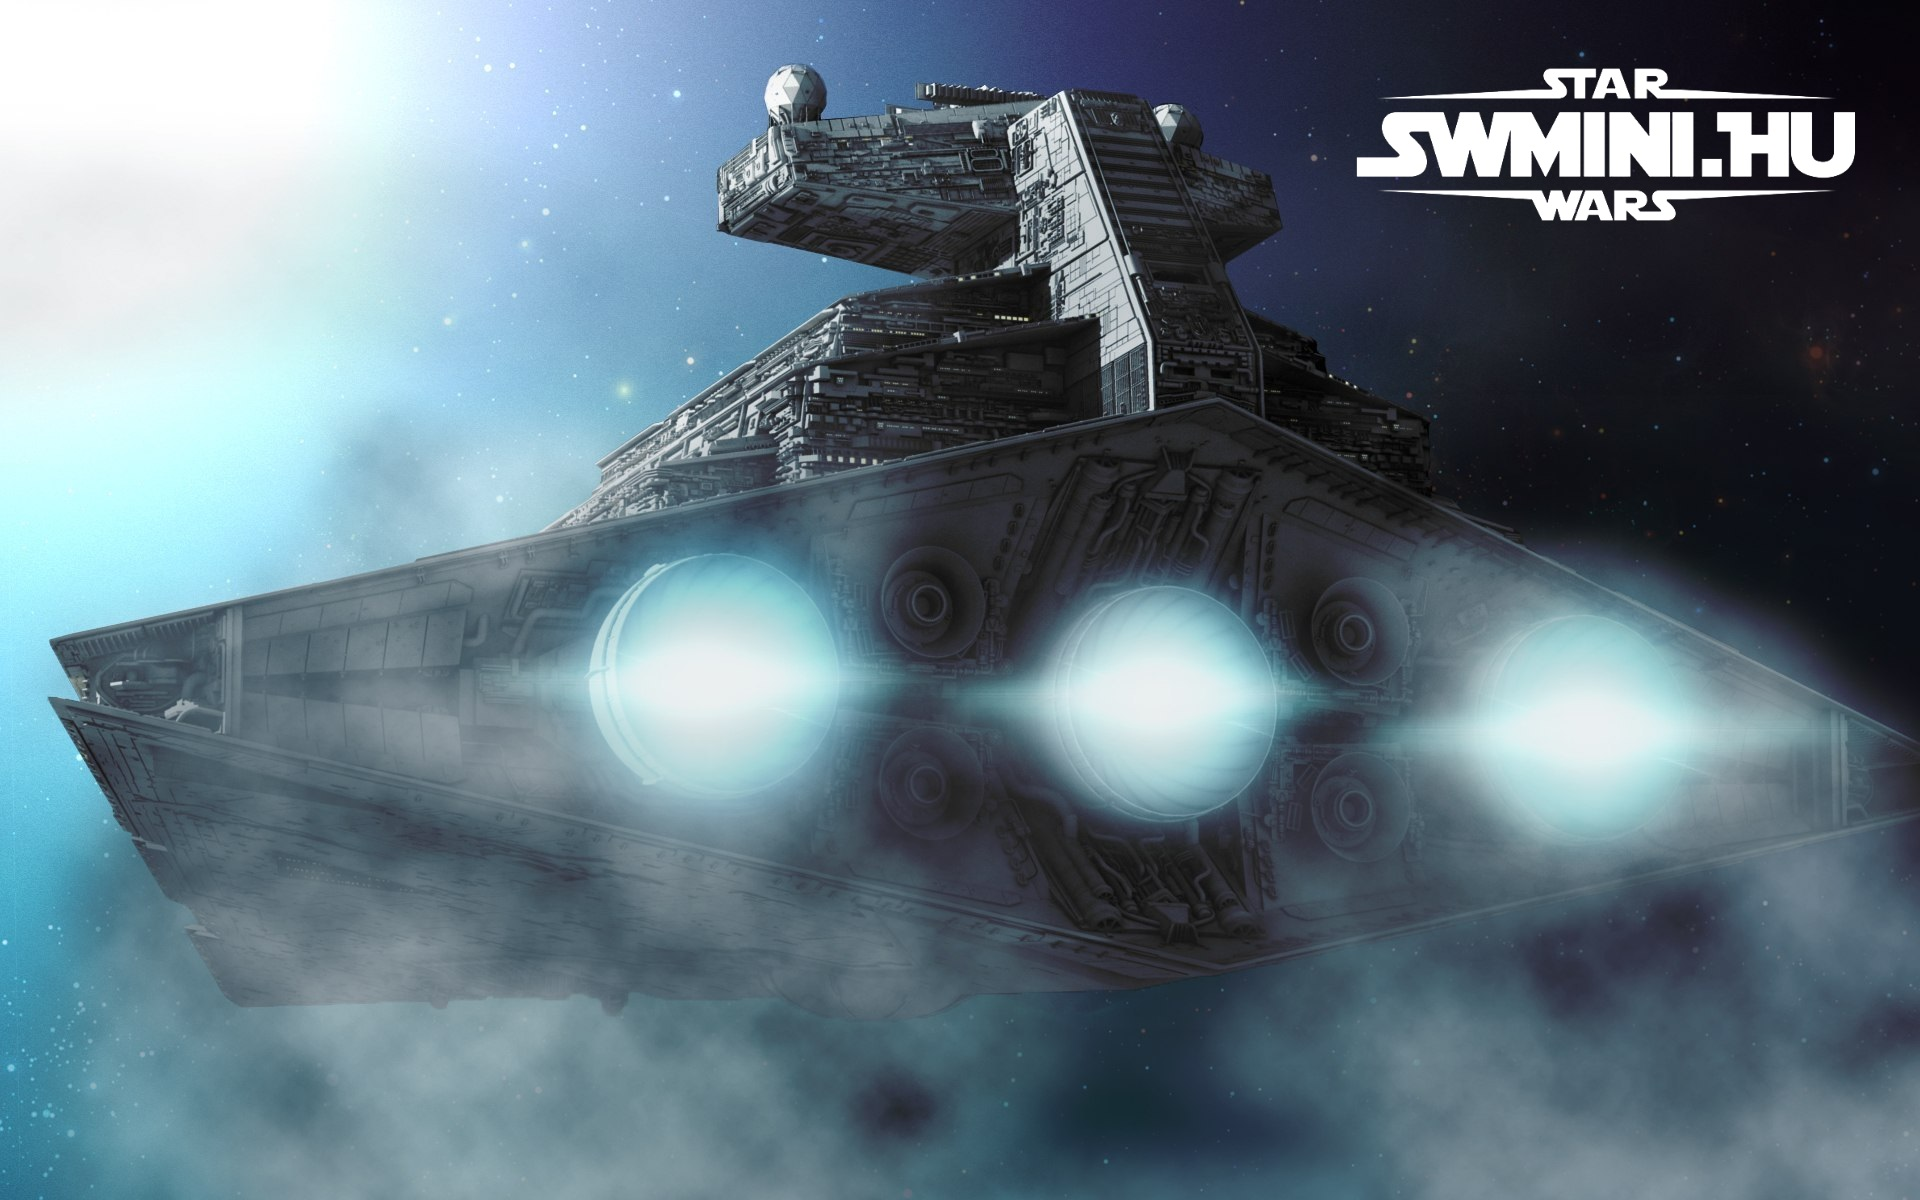 space-star-wars-star-destroyer-1920x1200_armada.jpg